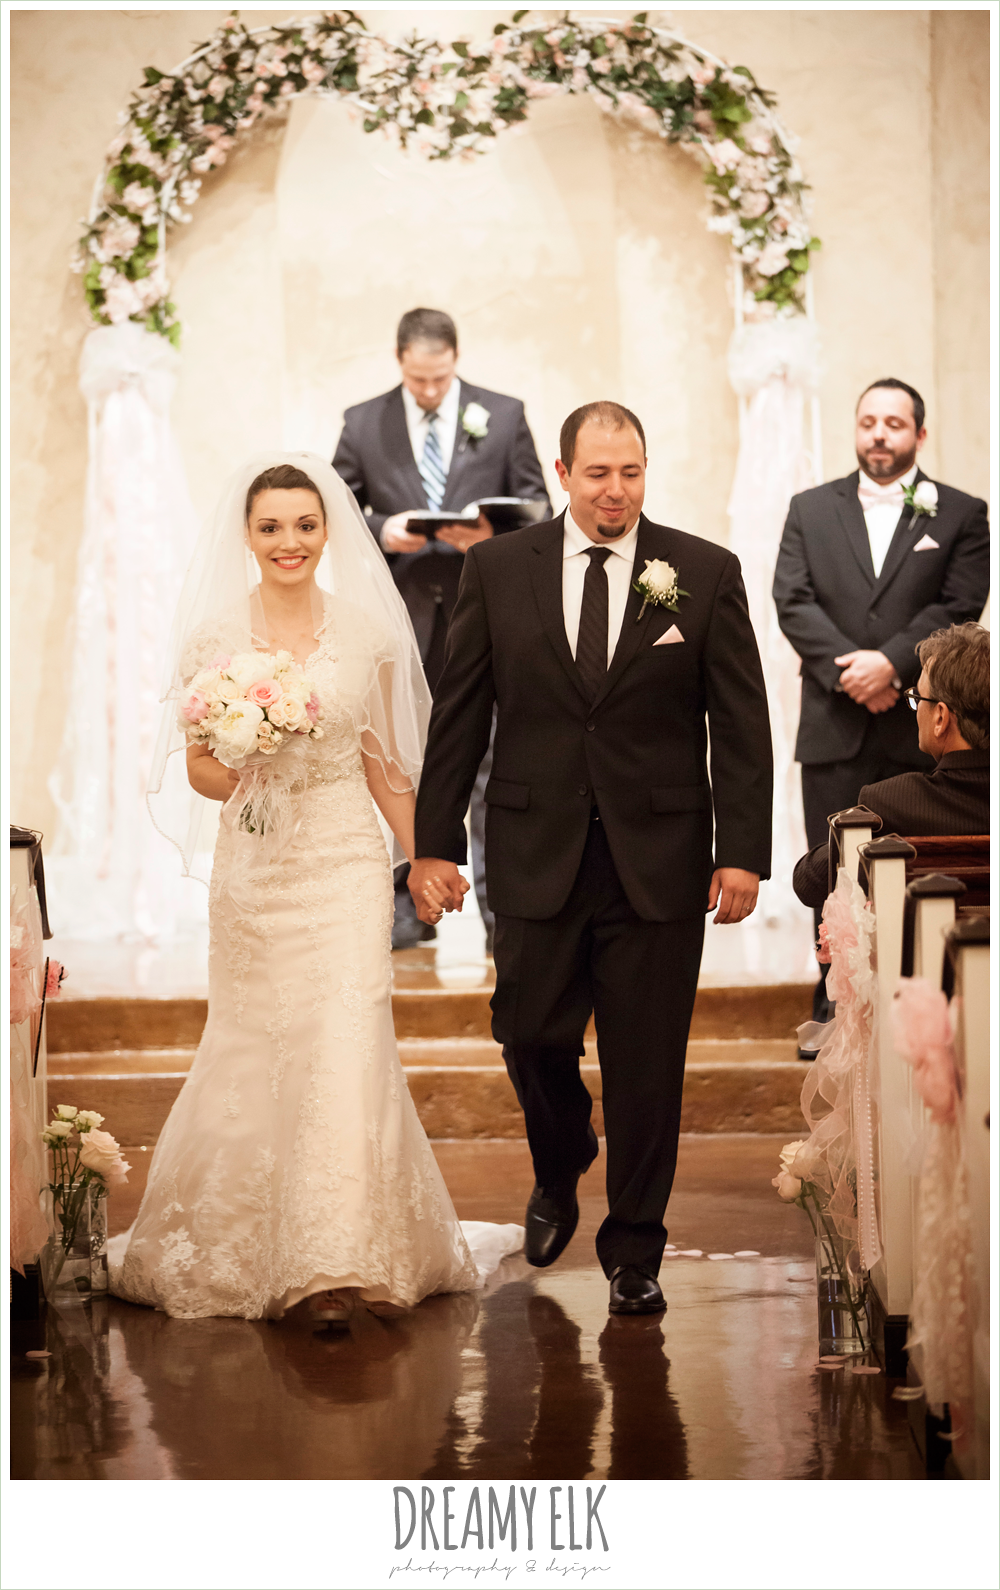 bride and groom walking down the aisle, northeast wedding chapel ceremony photo {dreamy elk photography and design}